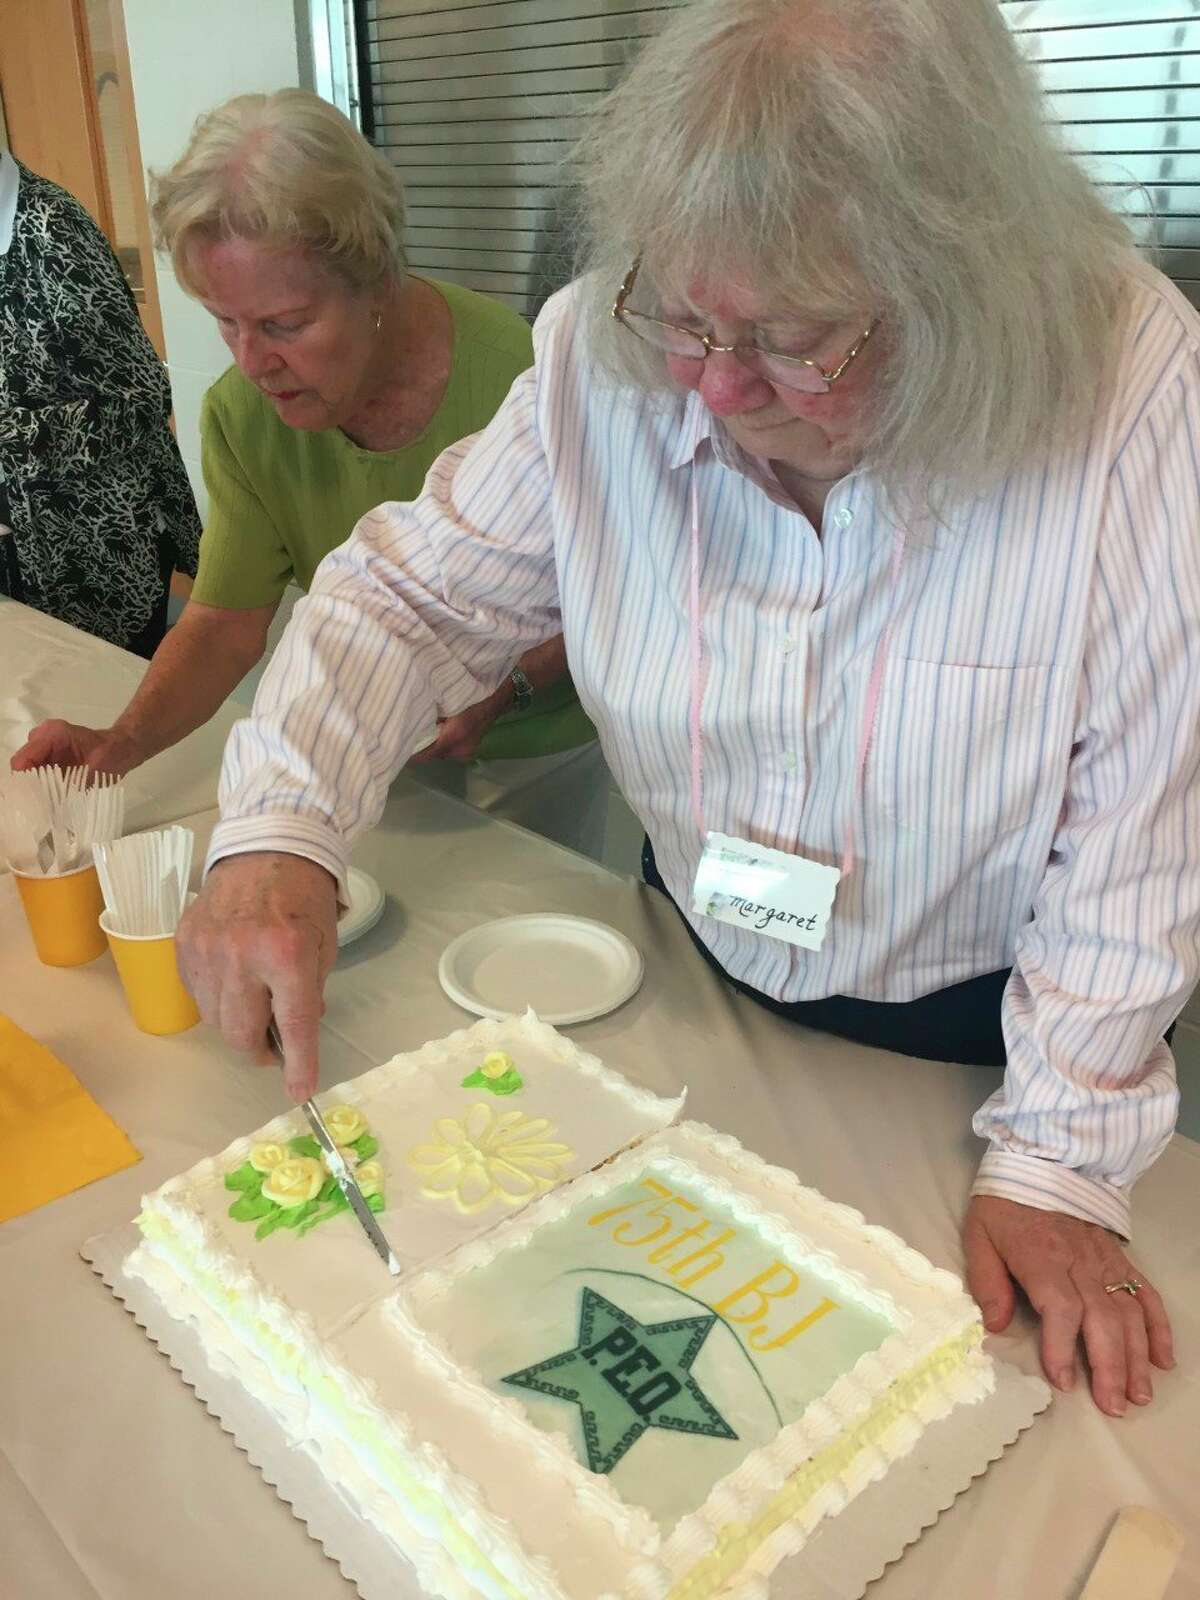 Margaret Beery cuts the anniversary cakewith Barb Baltazar's help during a75th anniversary teafor theChapter BJ of P.E.O. in Frankforton Aug. 11 at St. Andrew's Presbyterian Church in Beulah. (Courtesy Photo)